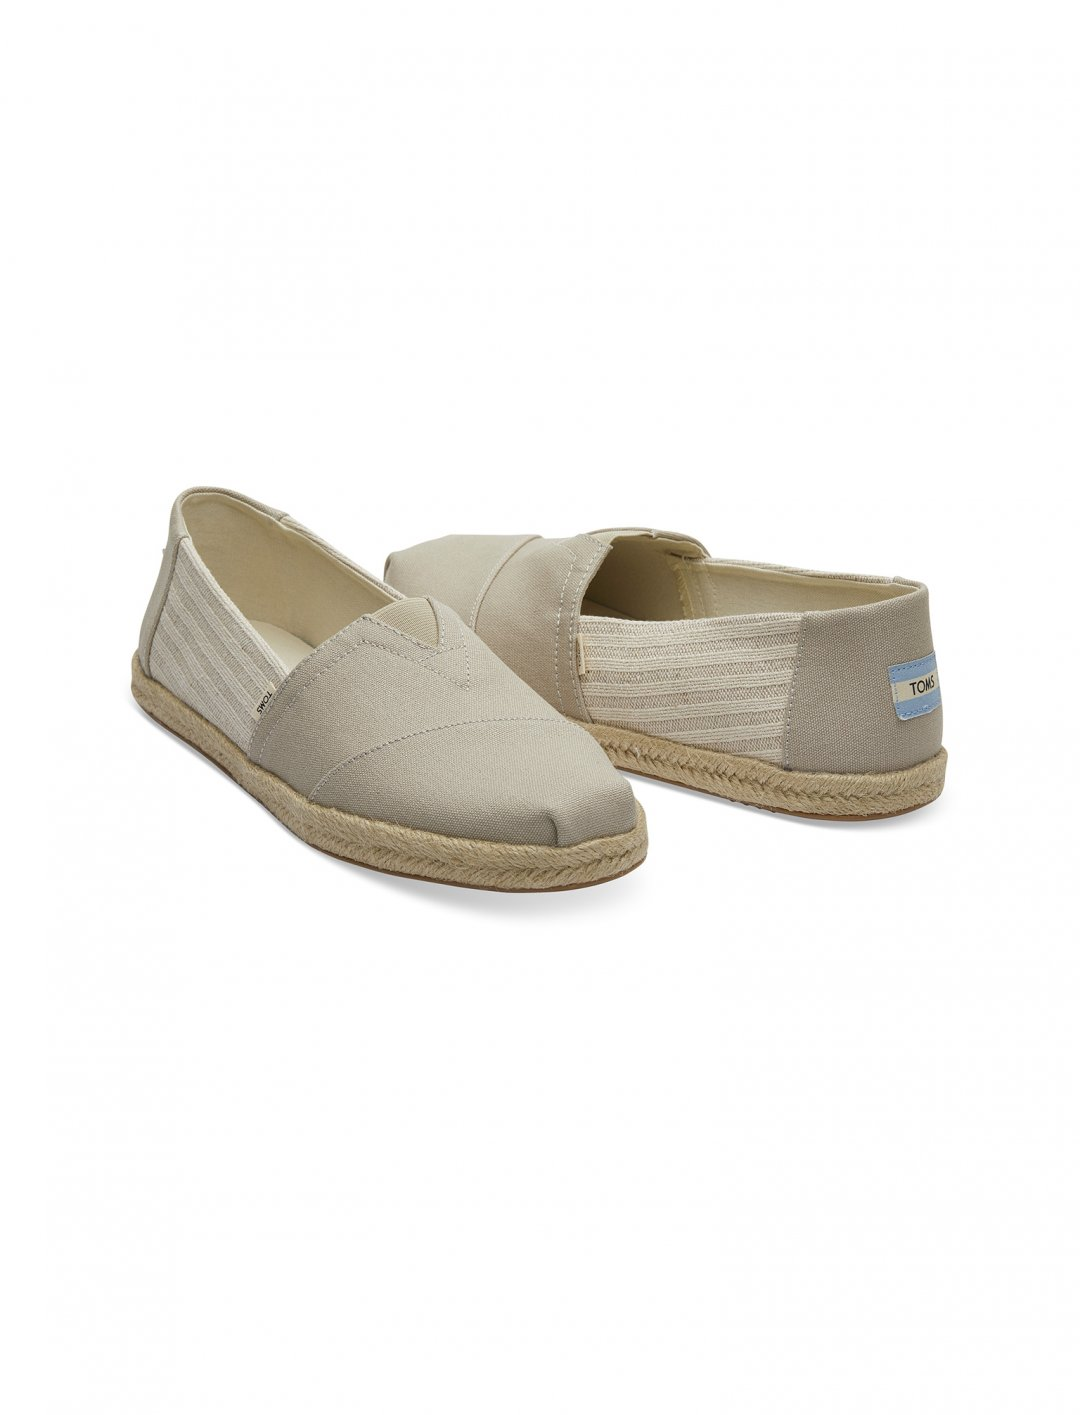 "Men's Espadrilles {""id"":12,""product_section_id"":1,""name"":""Shoes"",""order"":12} Toms"